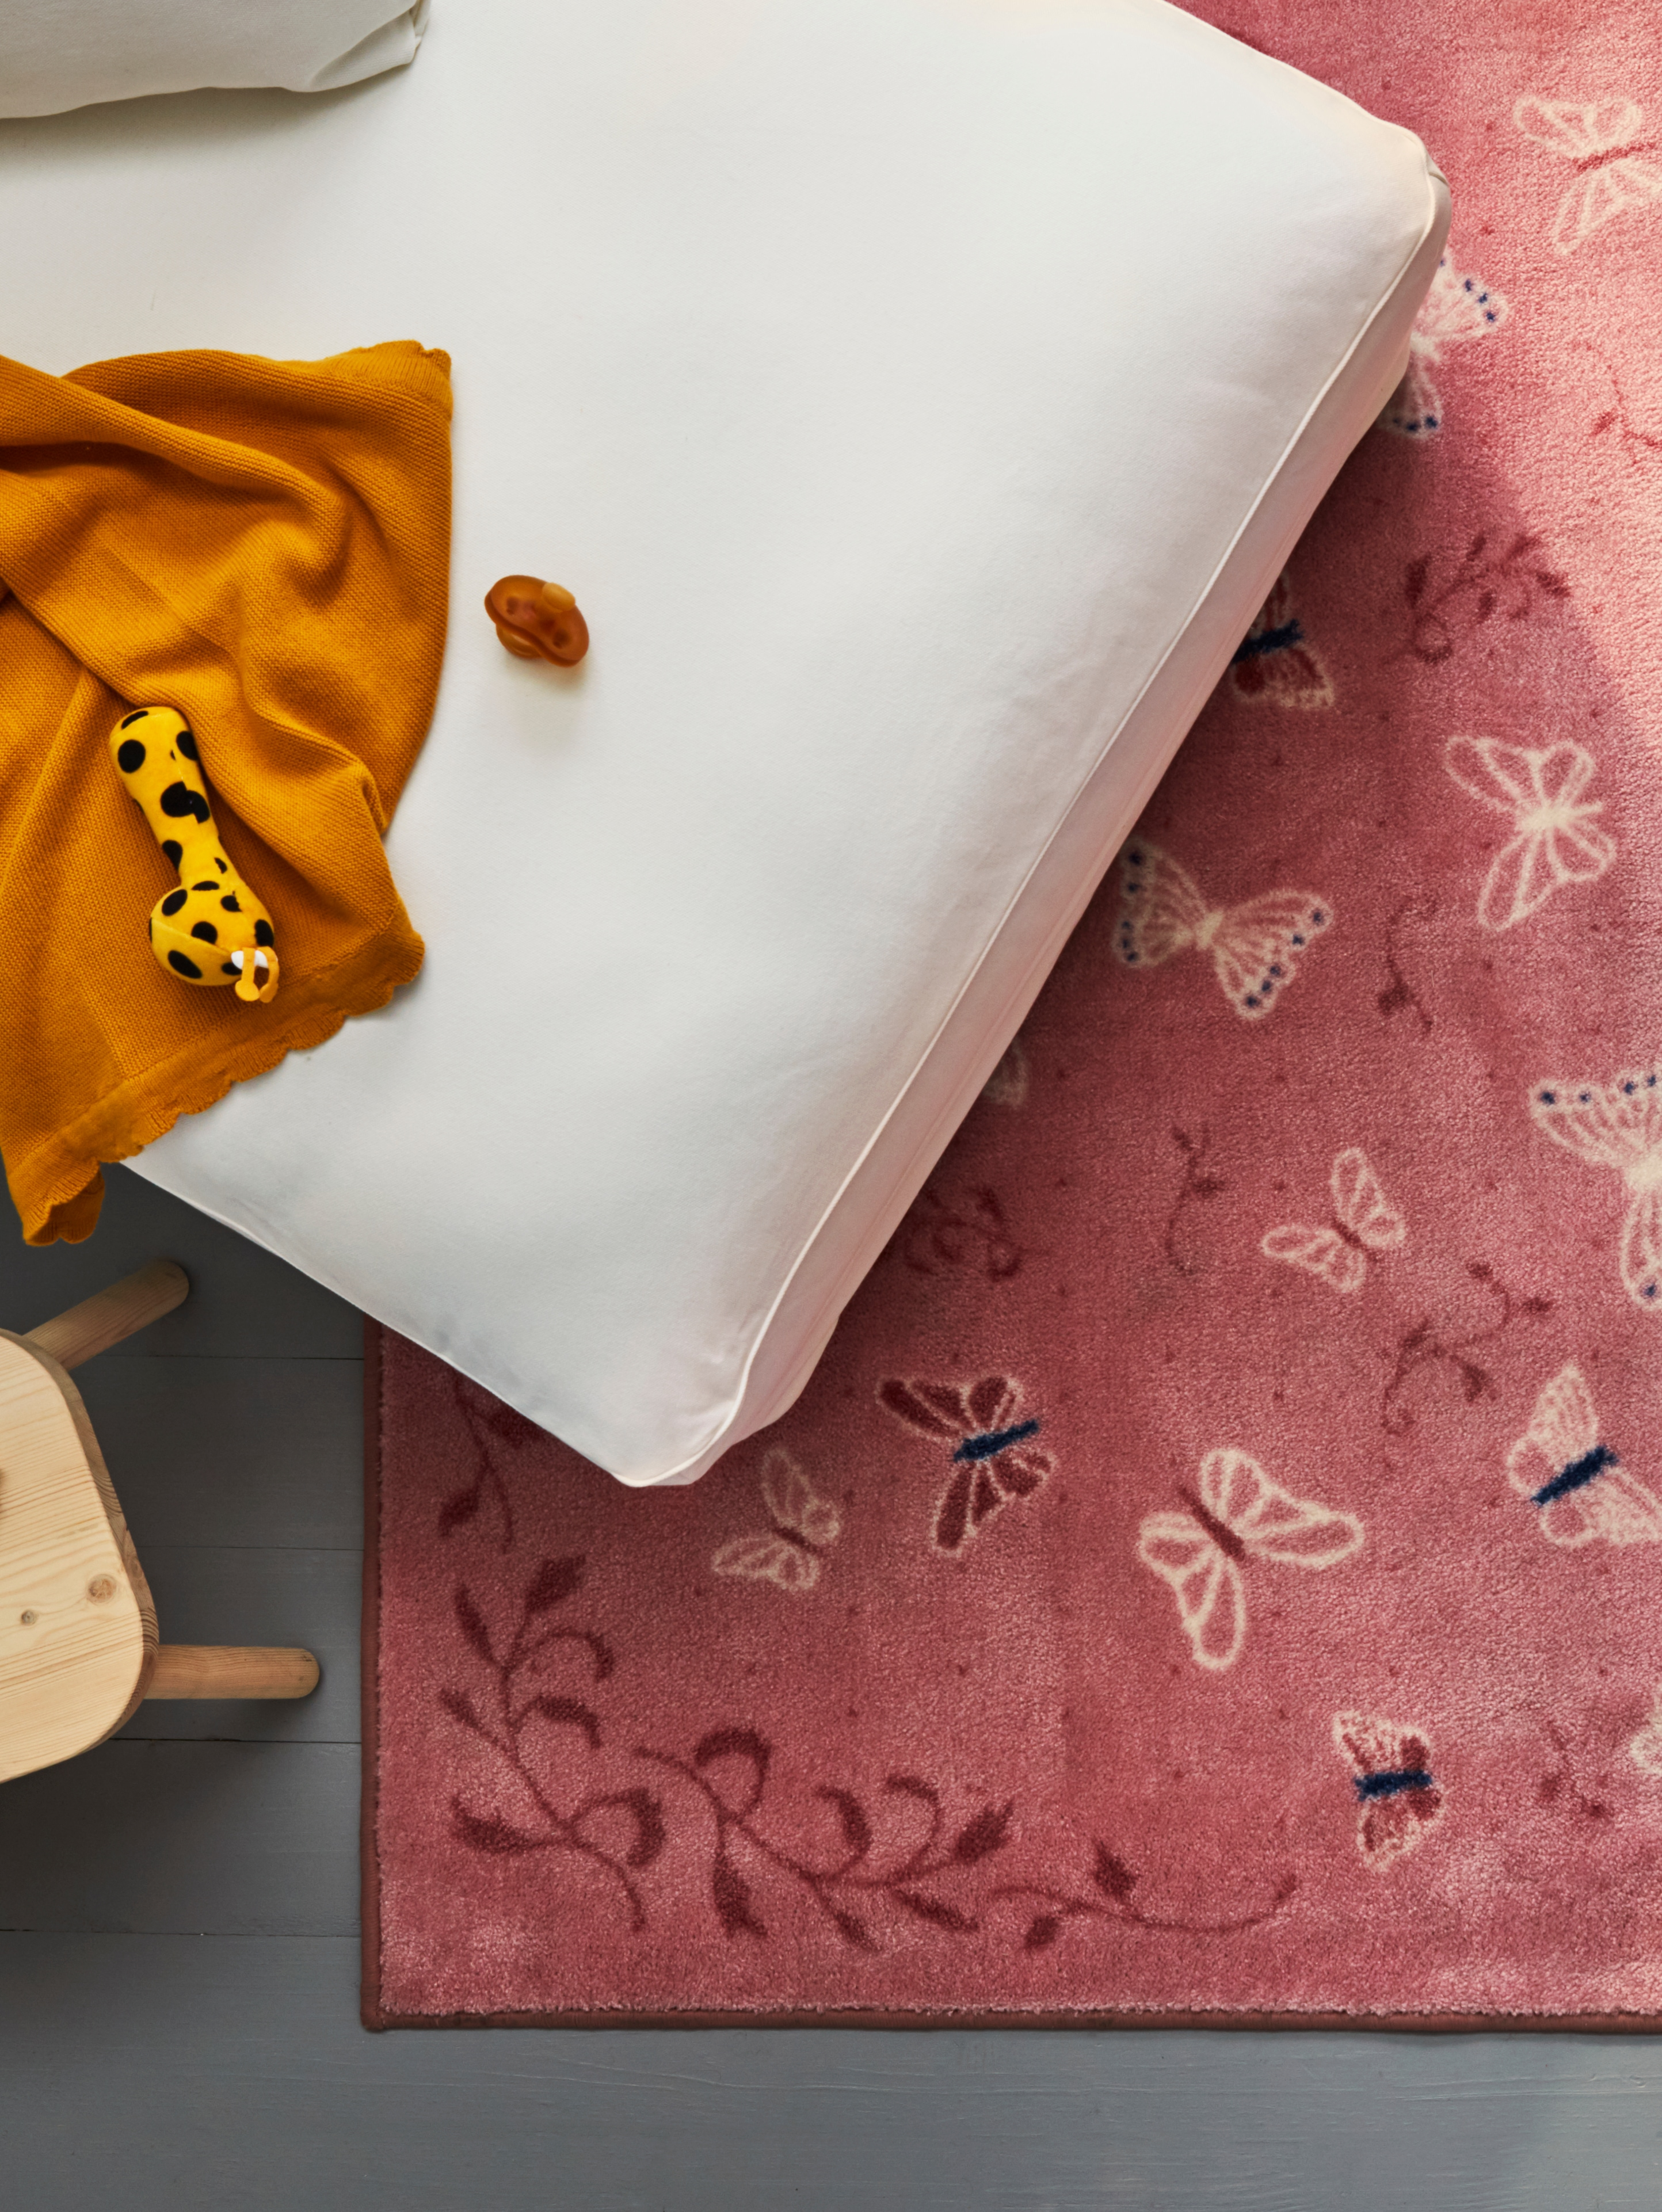 An aerial view of a SÅNGLÄRKA low pile rug in butterfly/pink that is partially under a chaise longue with a rattle on top.